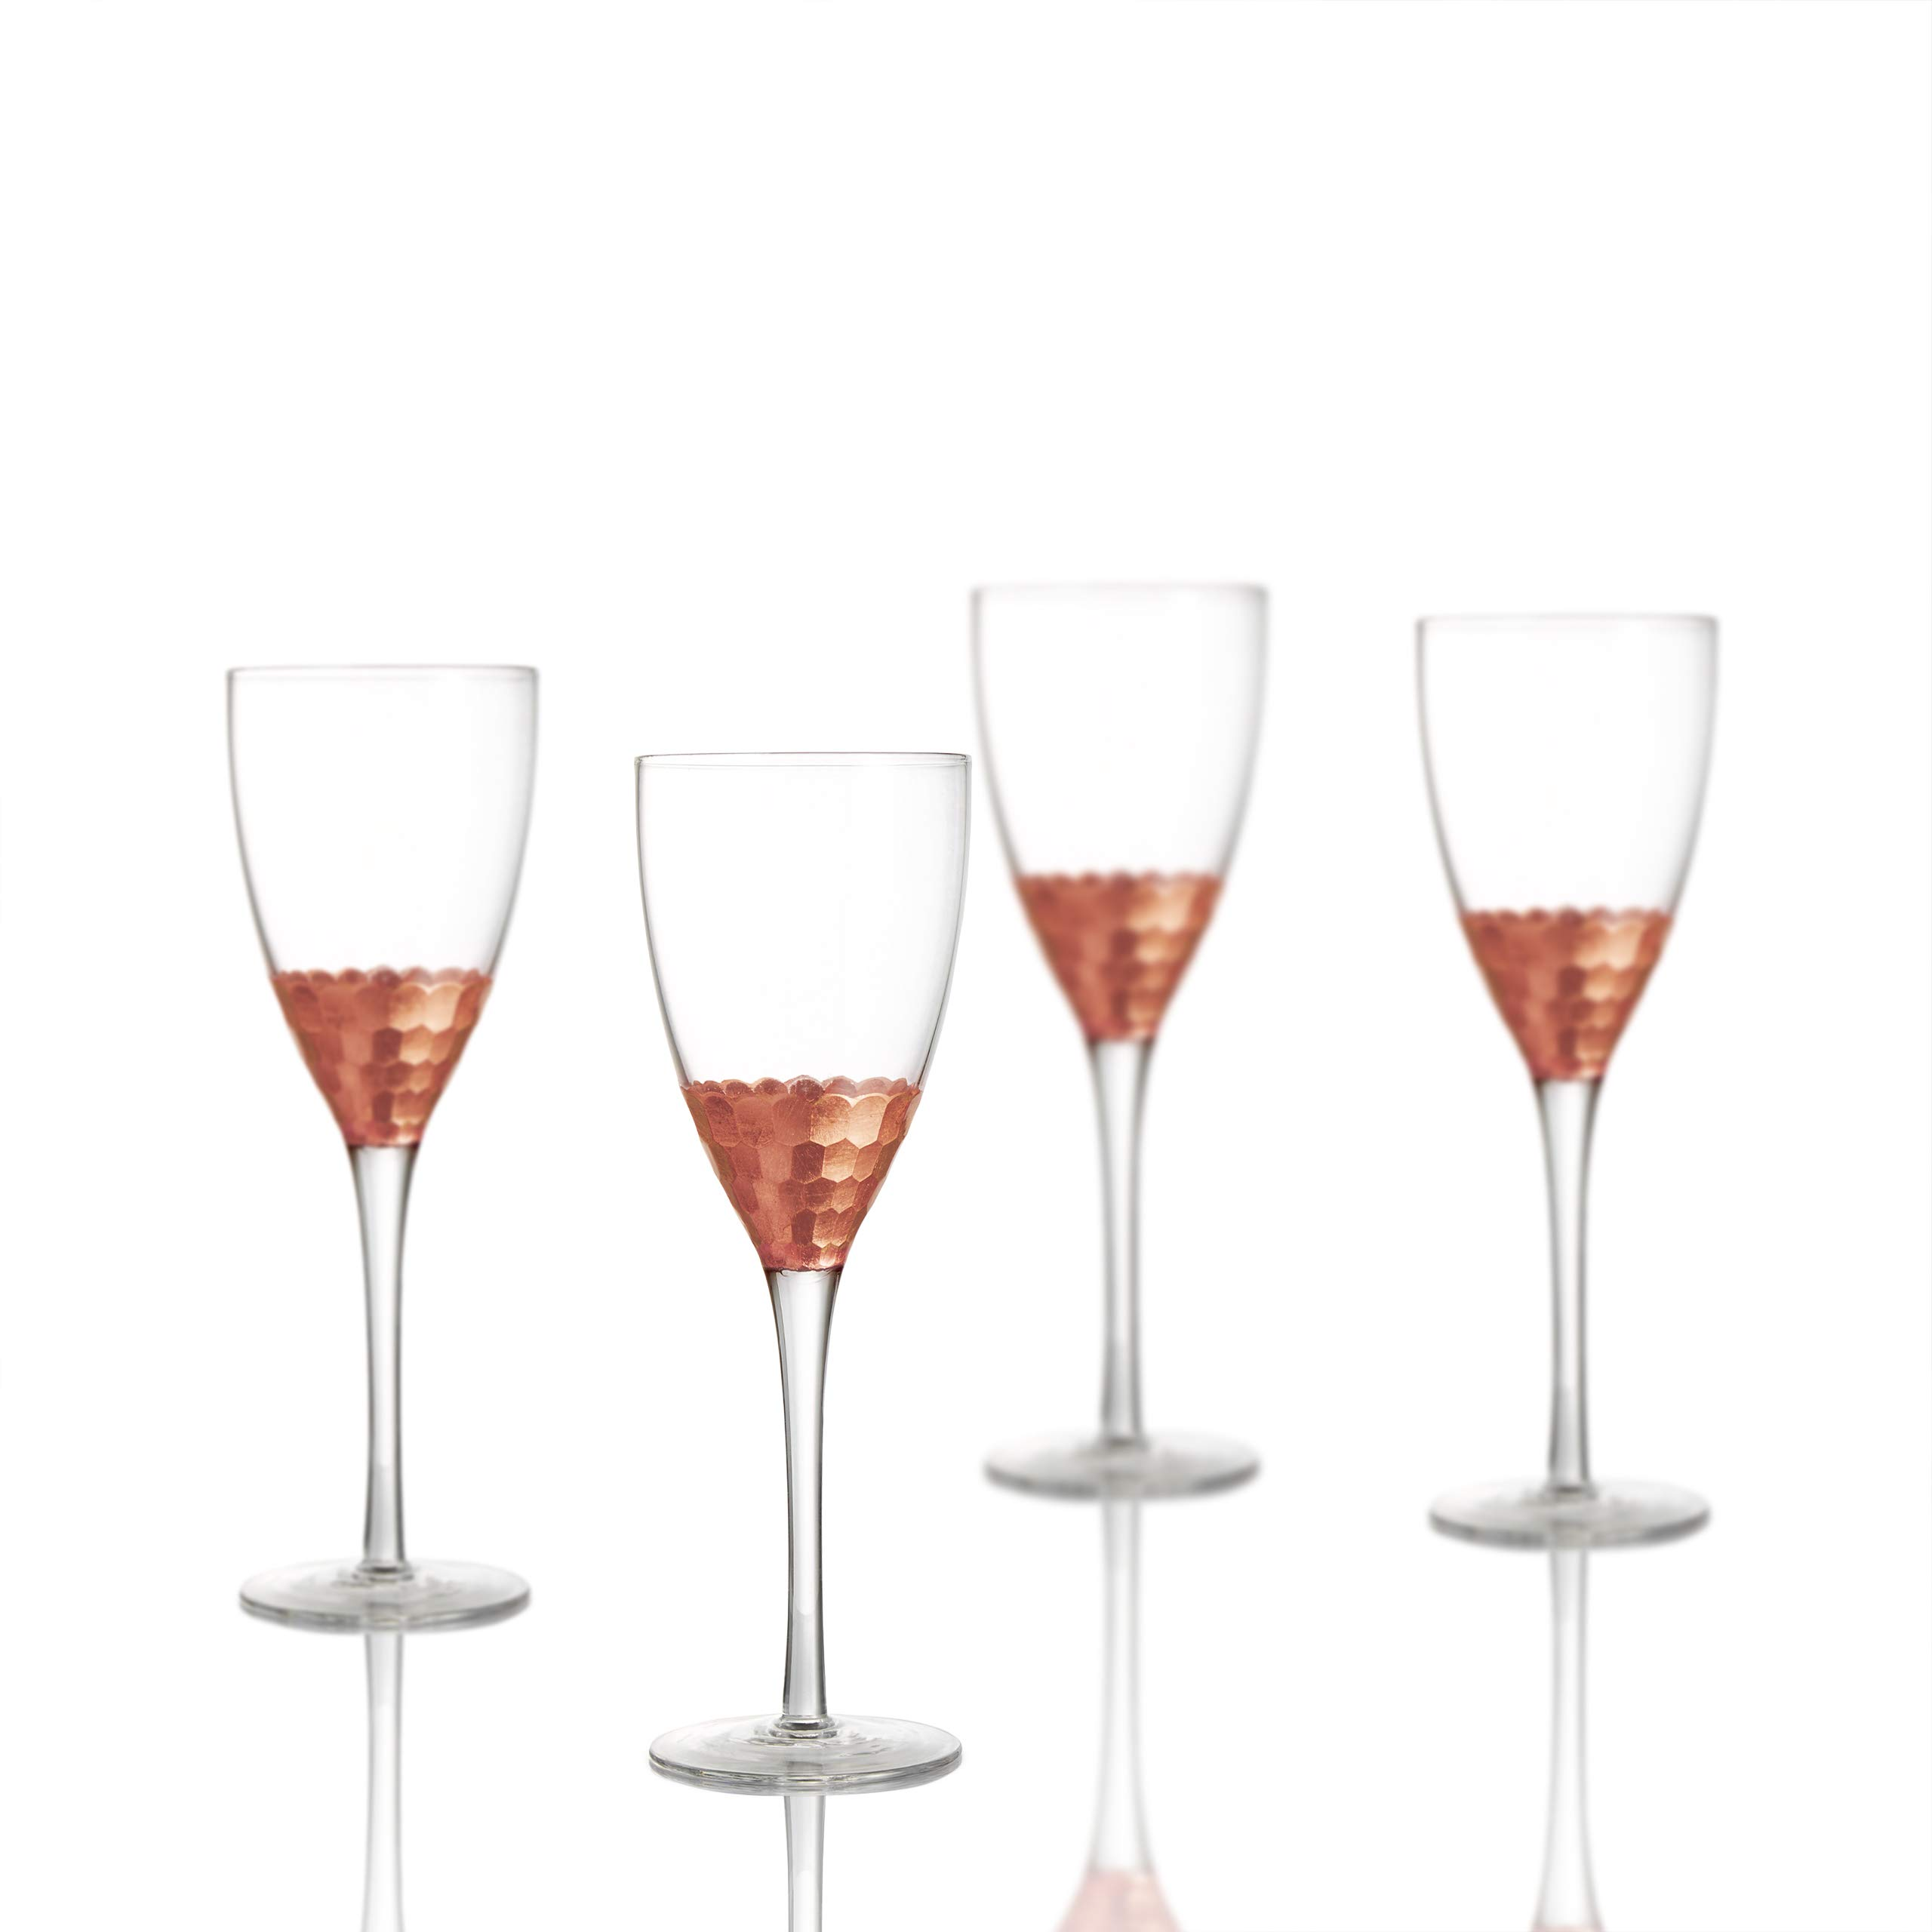 Fitz and Floyd Daphne Wine Glasses (Set of 4), Copper by Fitz and Floyd